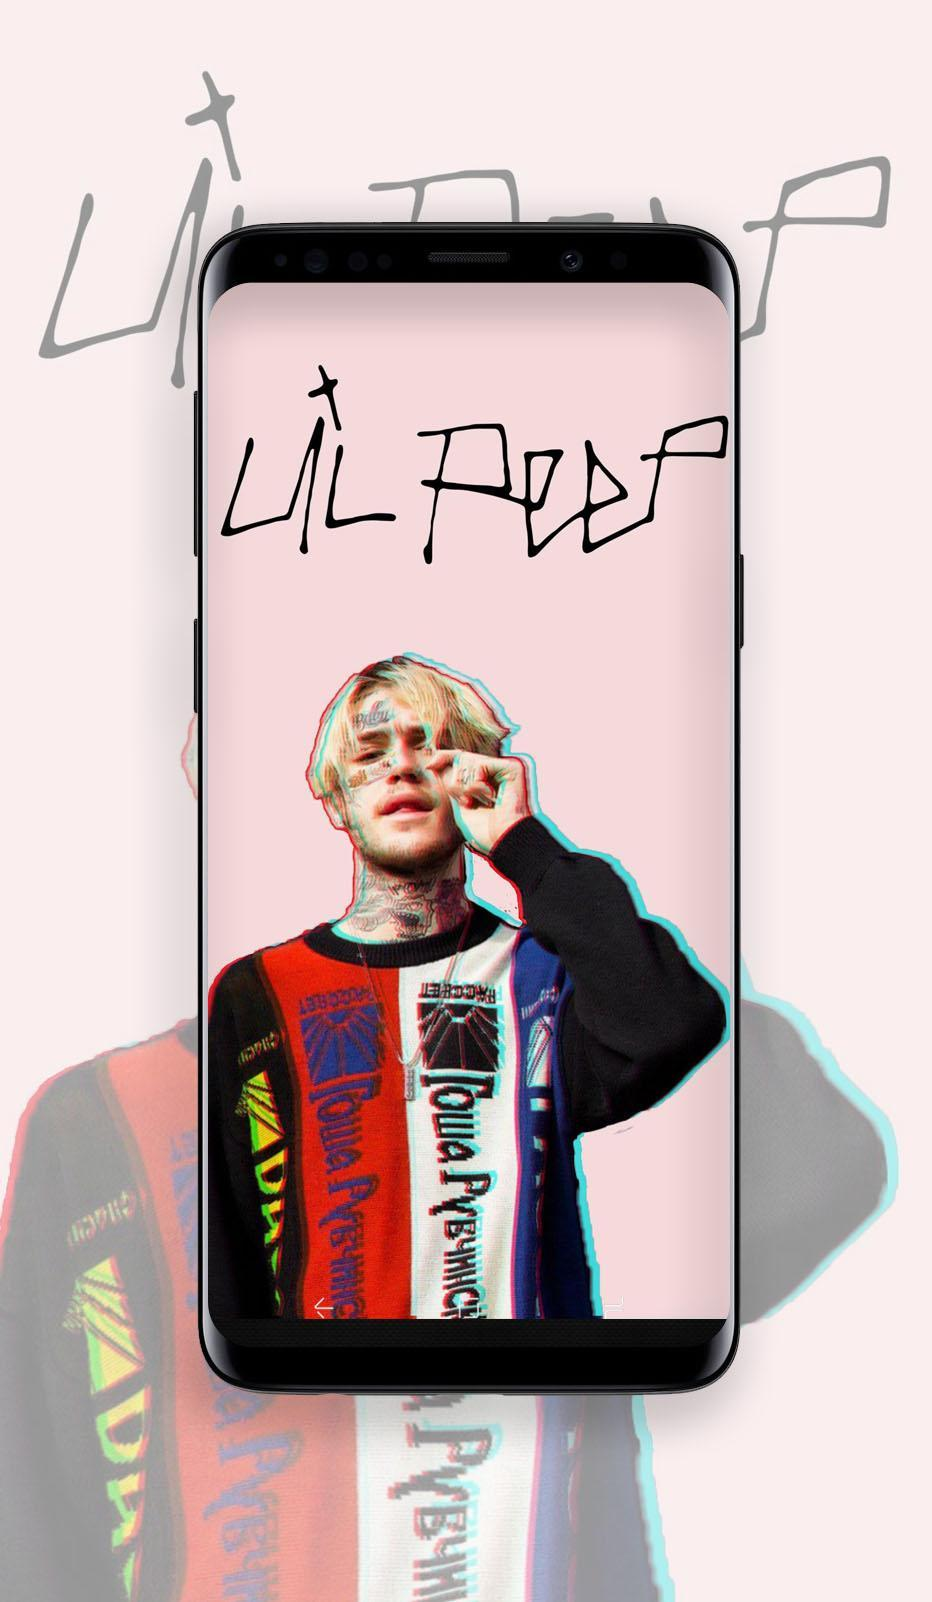 Lil Peep Wallpaper Hd 4k For Android Apk Download